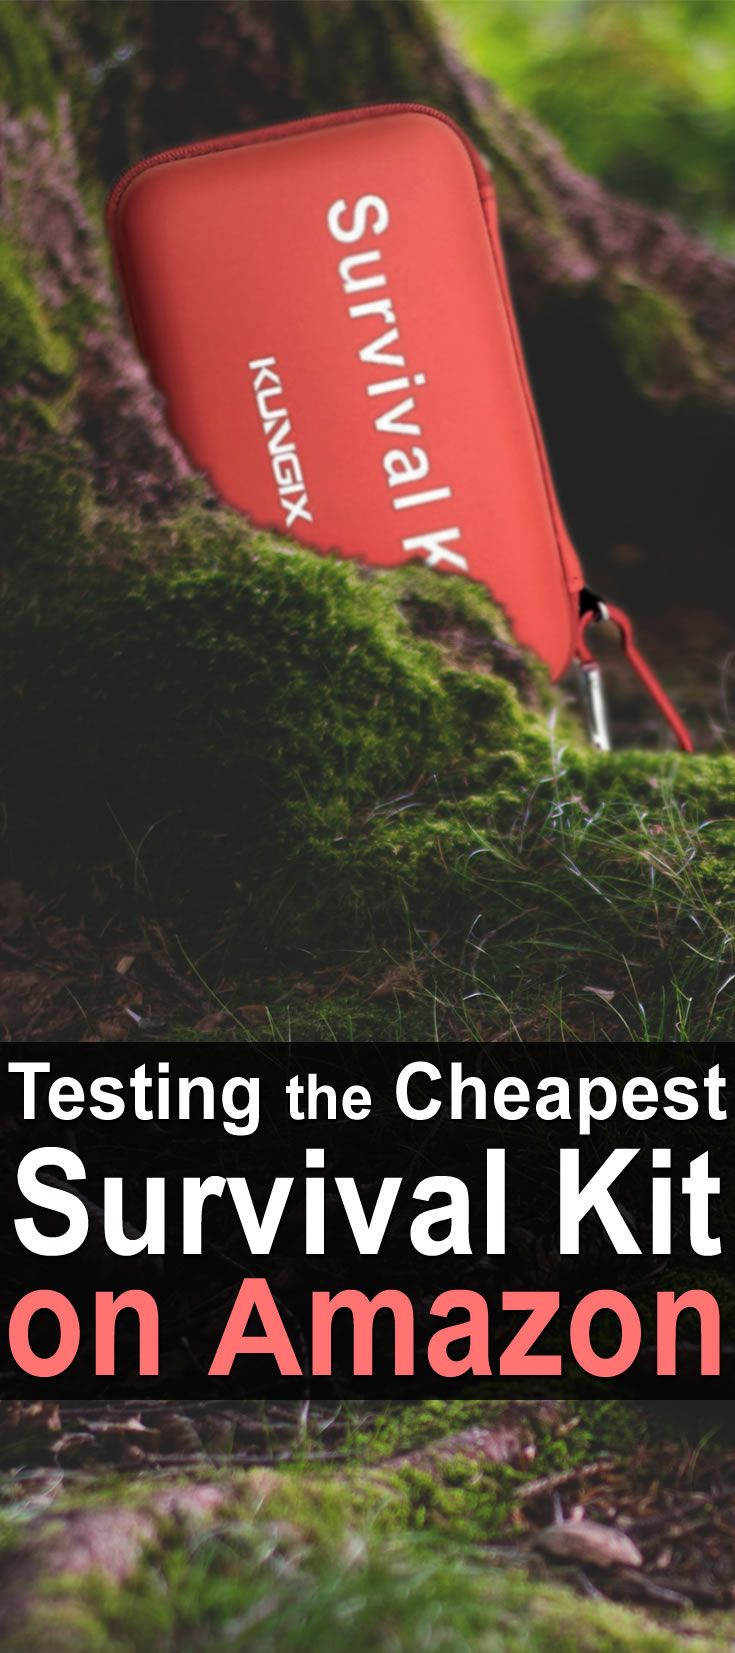 This is part of a series on cheap items from Amazon. In this video, Cody talks about the cheapest survival kit on Amazon: the Kungix Outdoor Survival Kit.